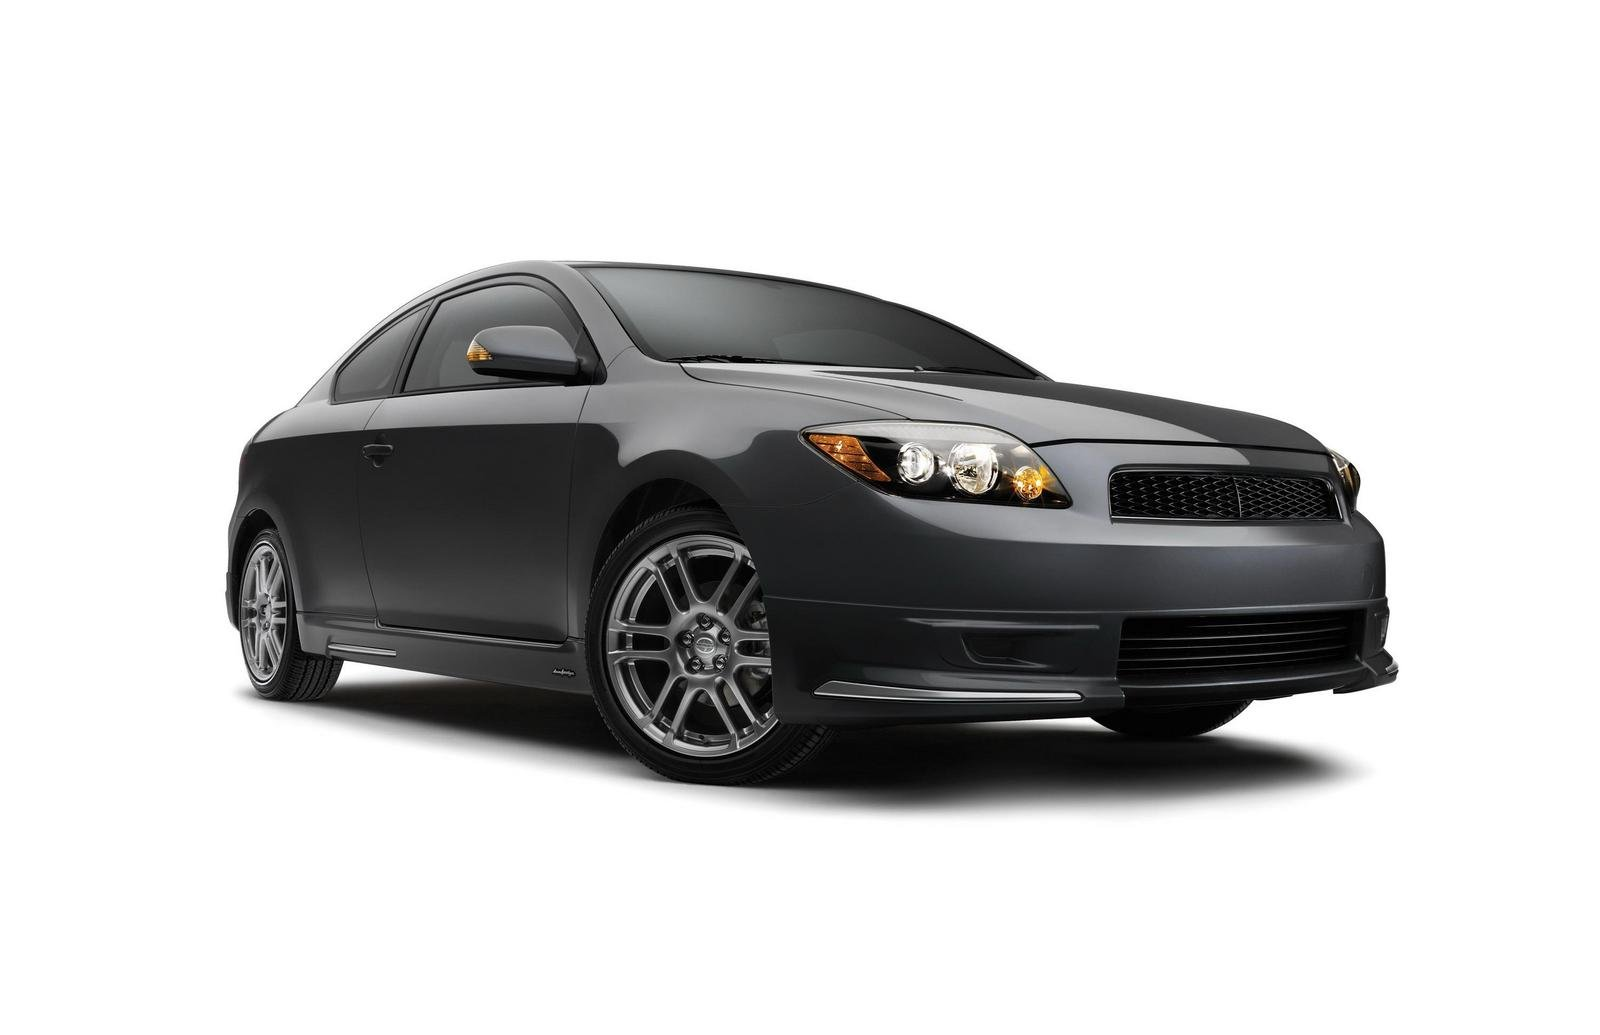 2008 scion tc release series 4 0 pricing announced news. Black Bedroom Furniture Sets. Home Design Ideas